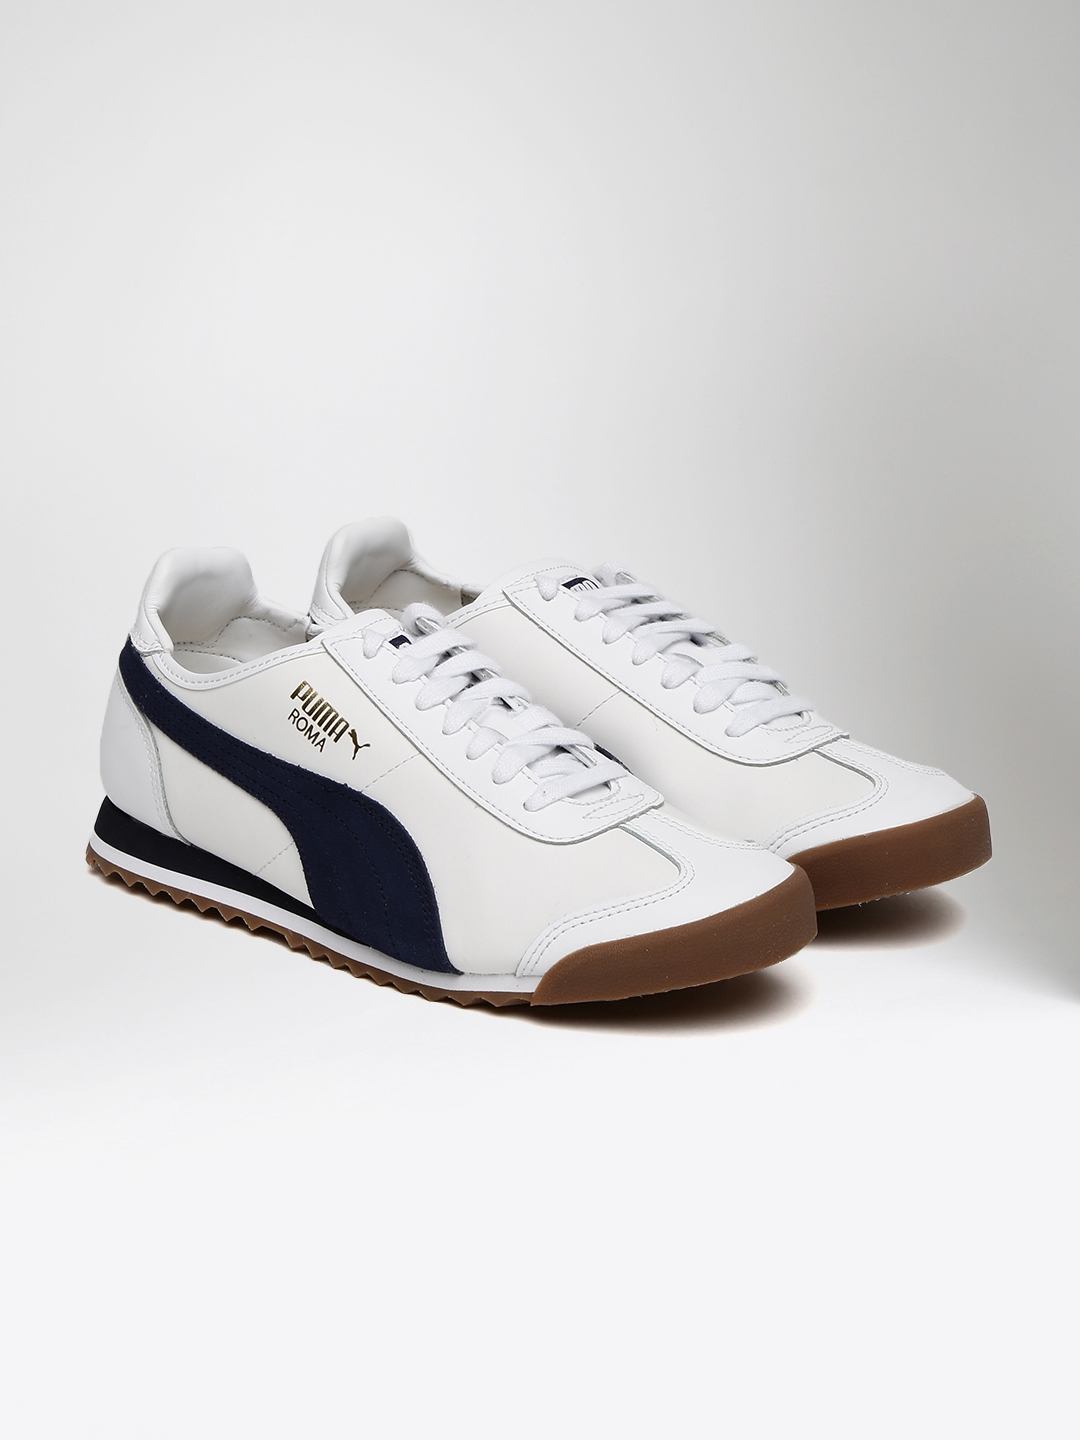 d52fc01b8ef Buy Puma Men White   Navy Roma OG 80s Sneakers - Casual Shoes for ...